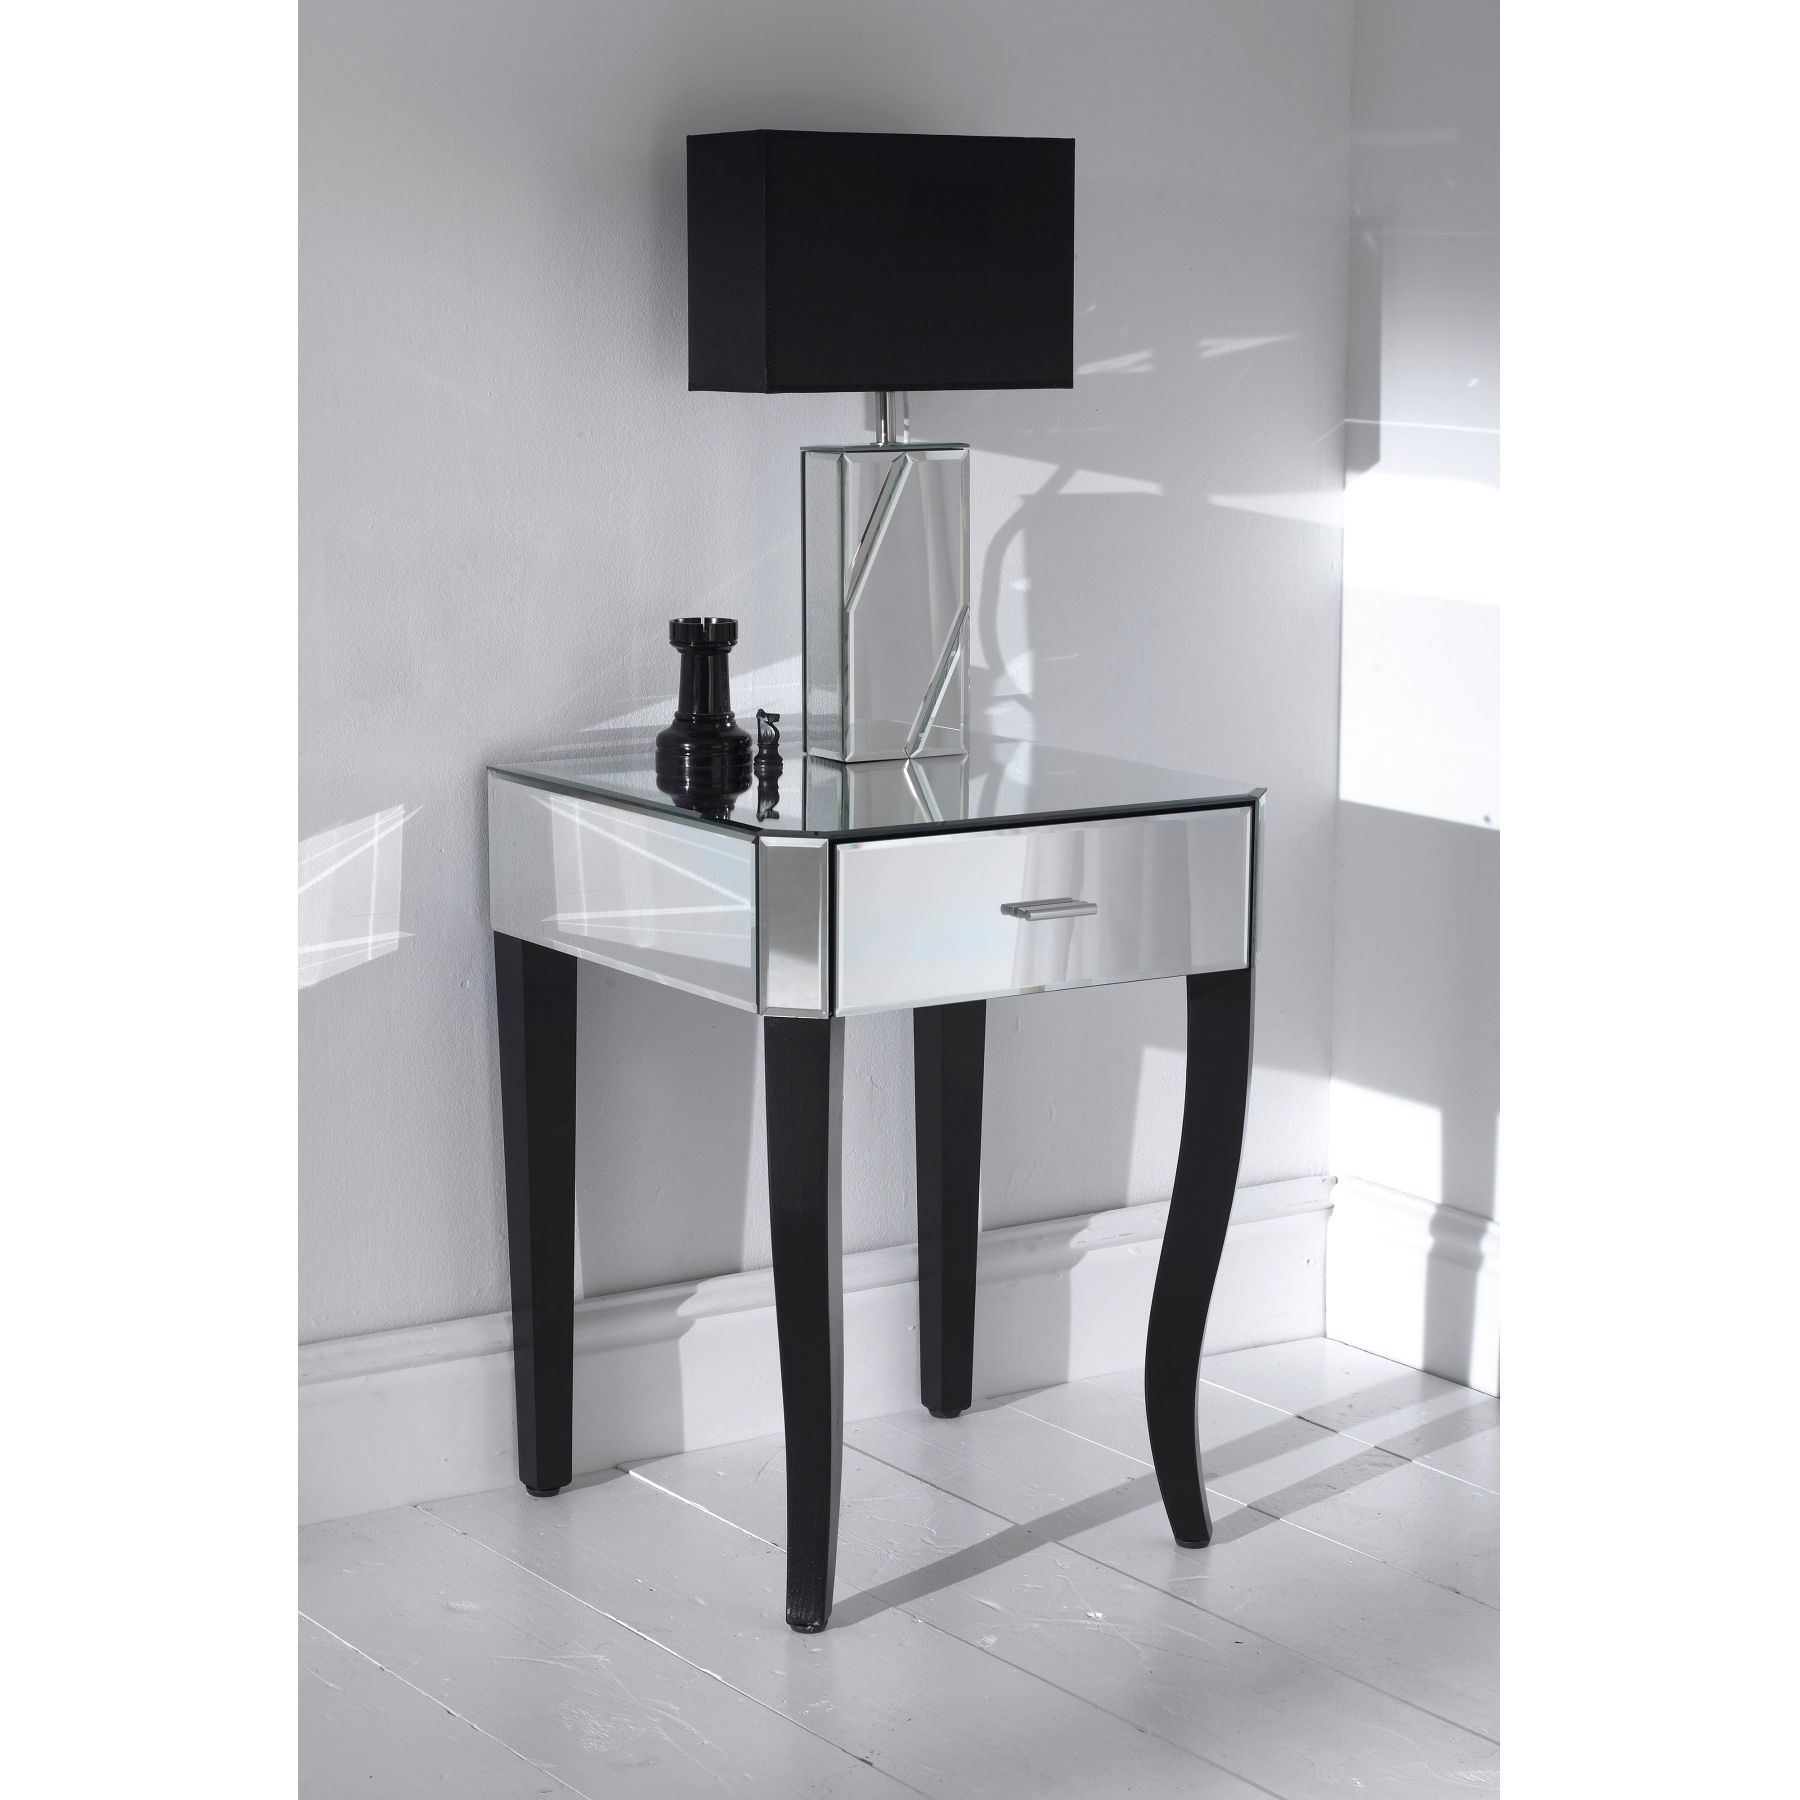 Nice This Company Has Several Mirrored Items And The Side Tables Are Affordable!